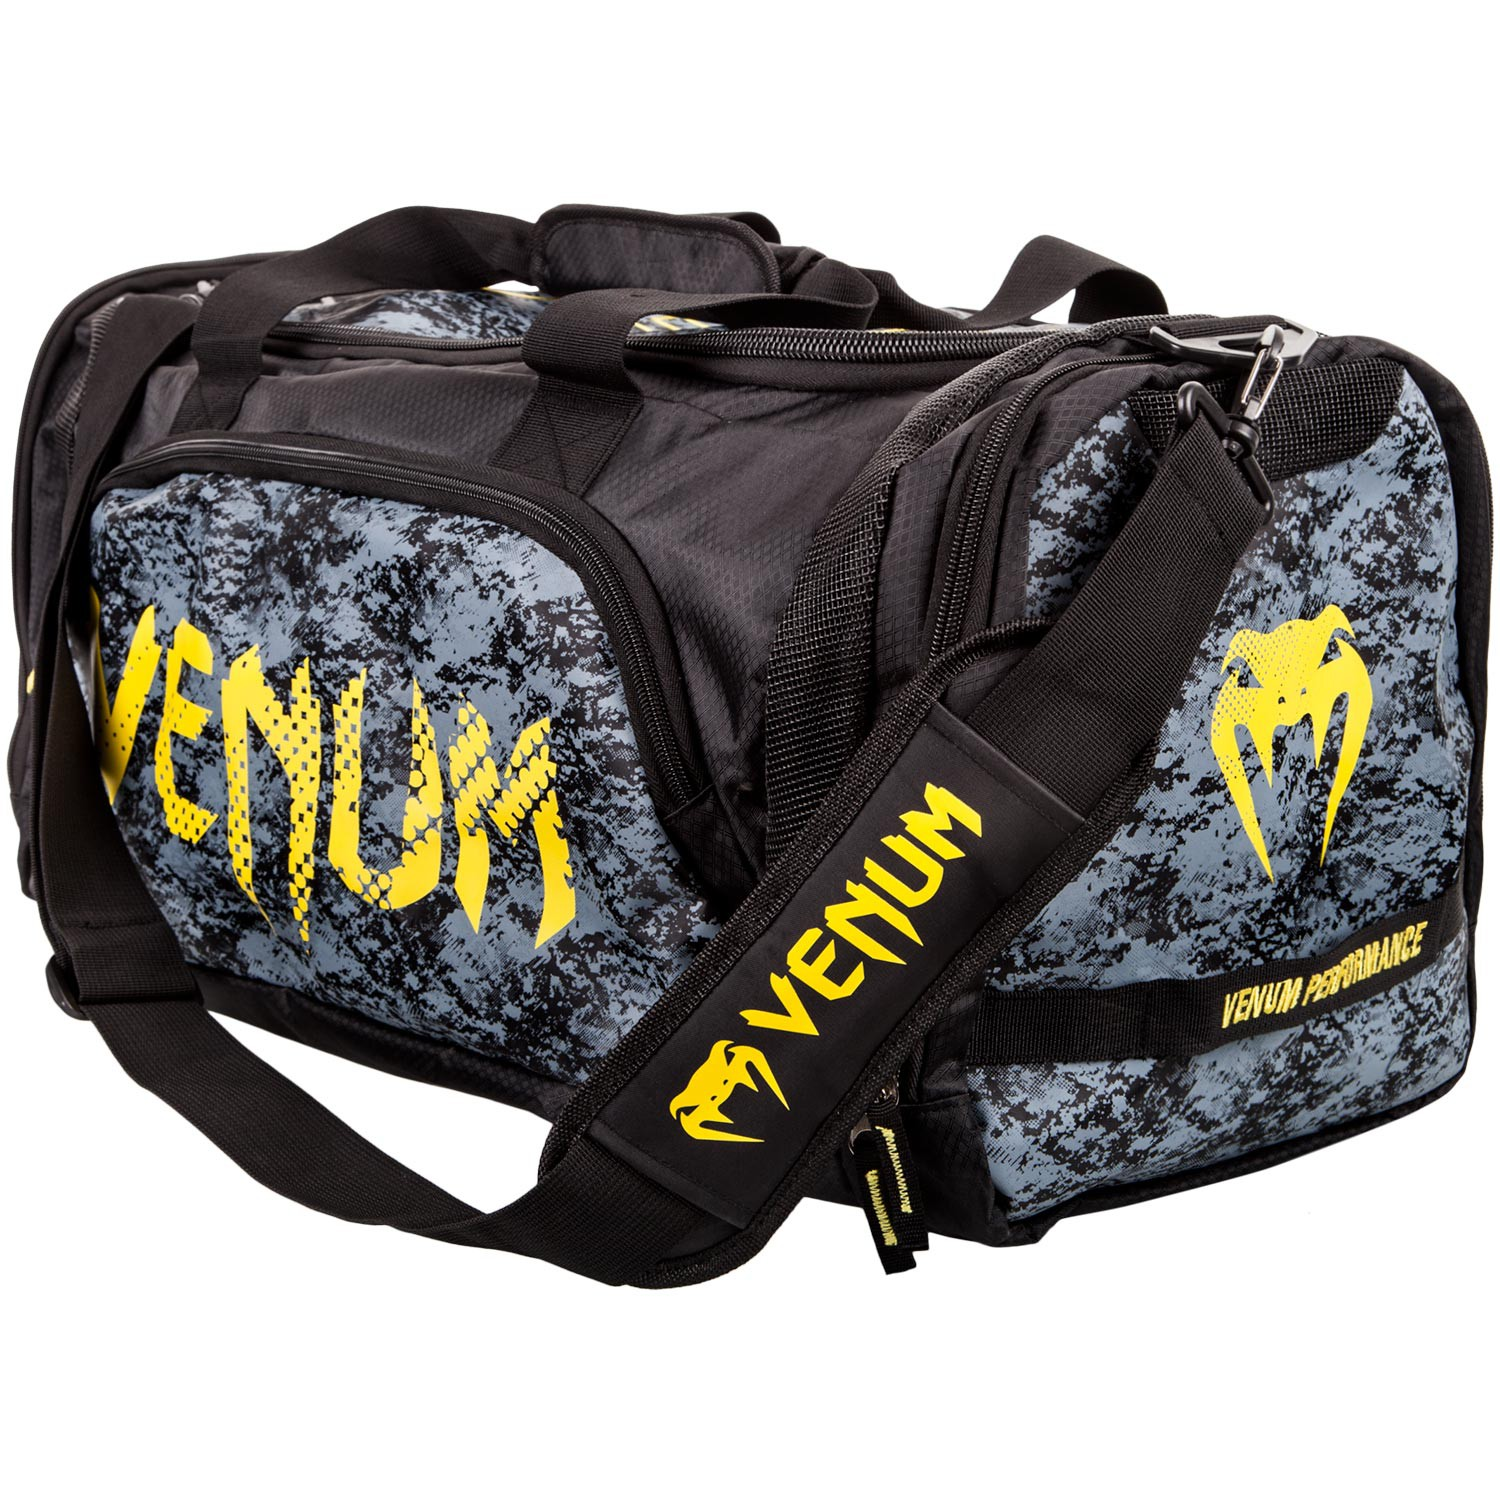 Venum Tramo Sport Bag Black/Yellow - Venum